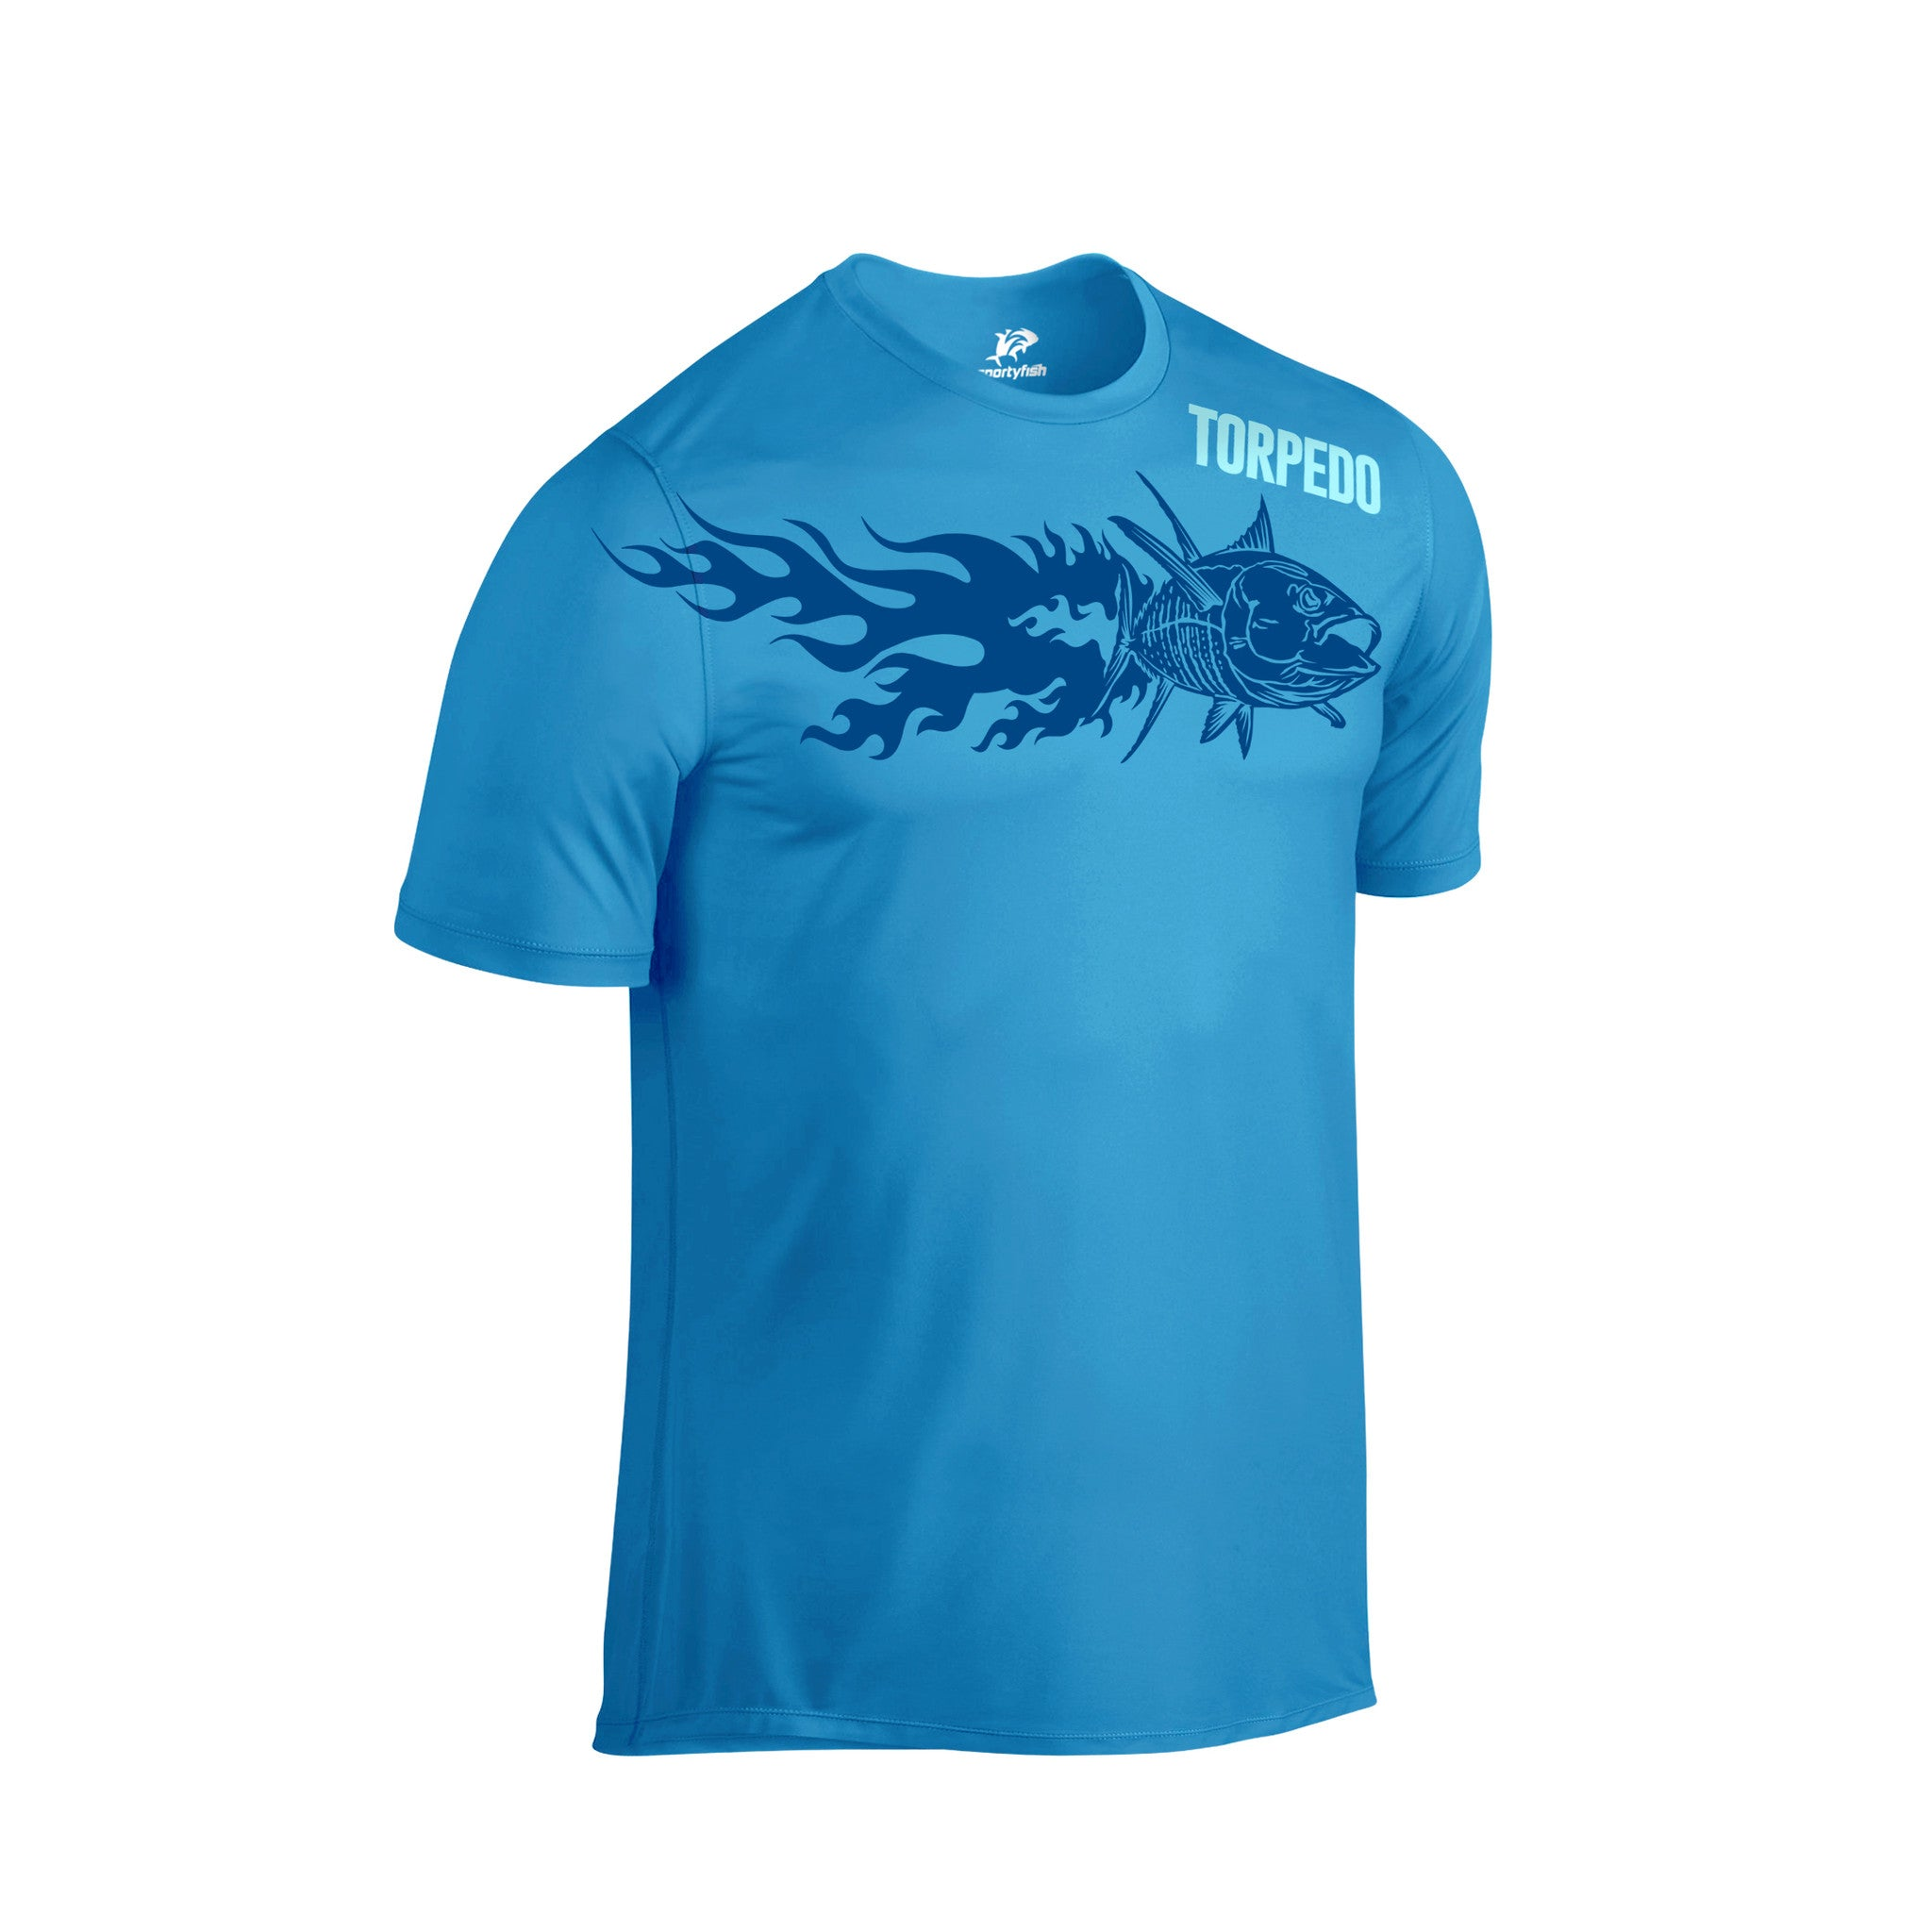 Black t shirt front view - Sportyfish Fury Series Turquoise T Shirt Yellowfin Tuna Front View